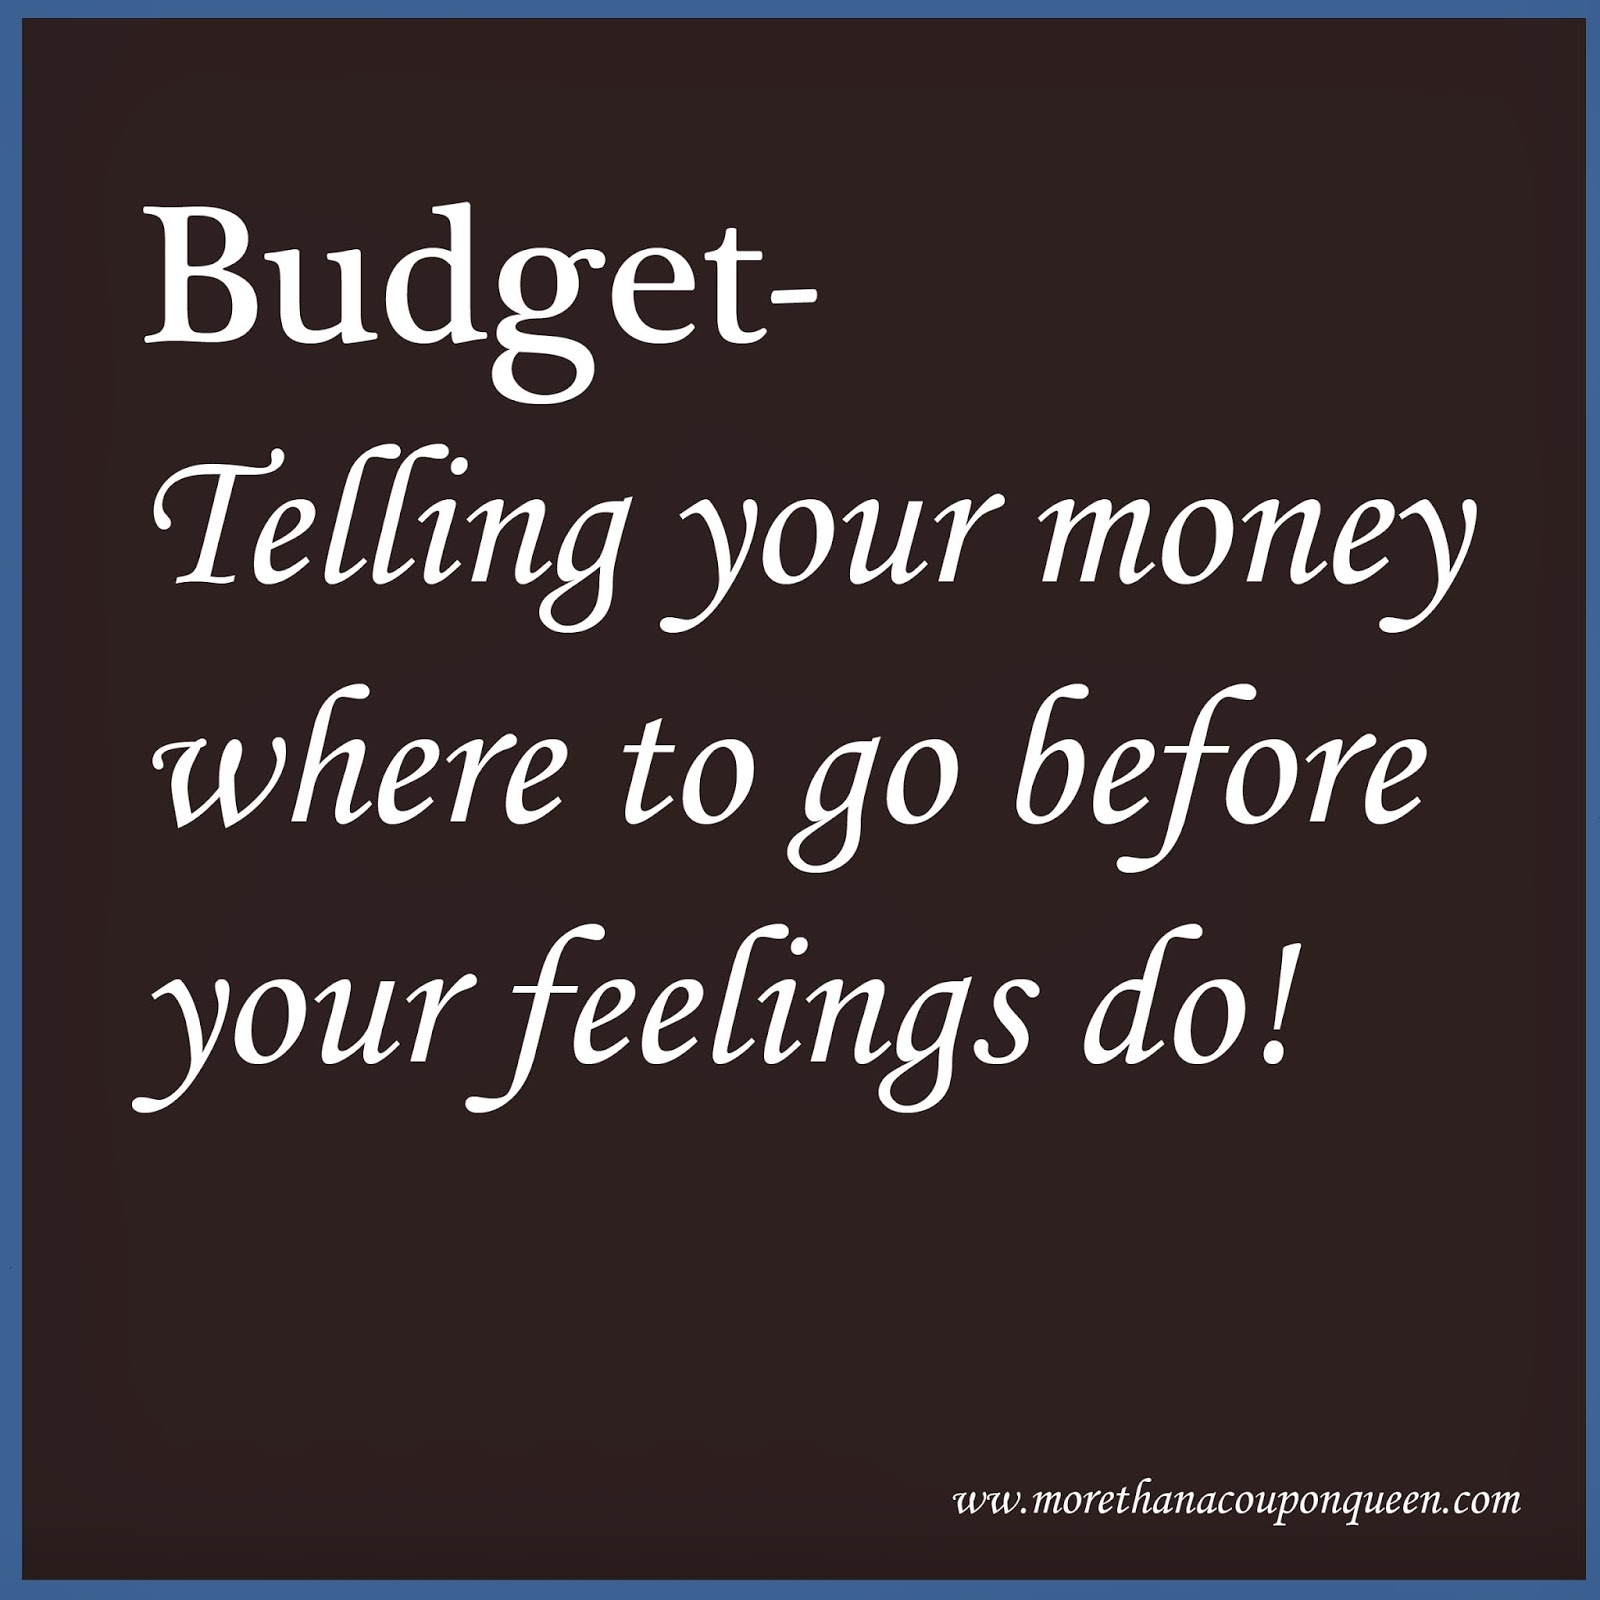 Why Should I Have A Budget